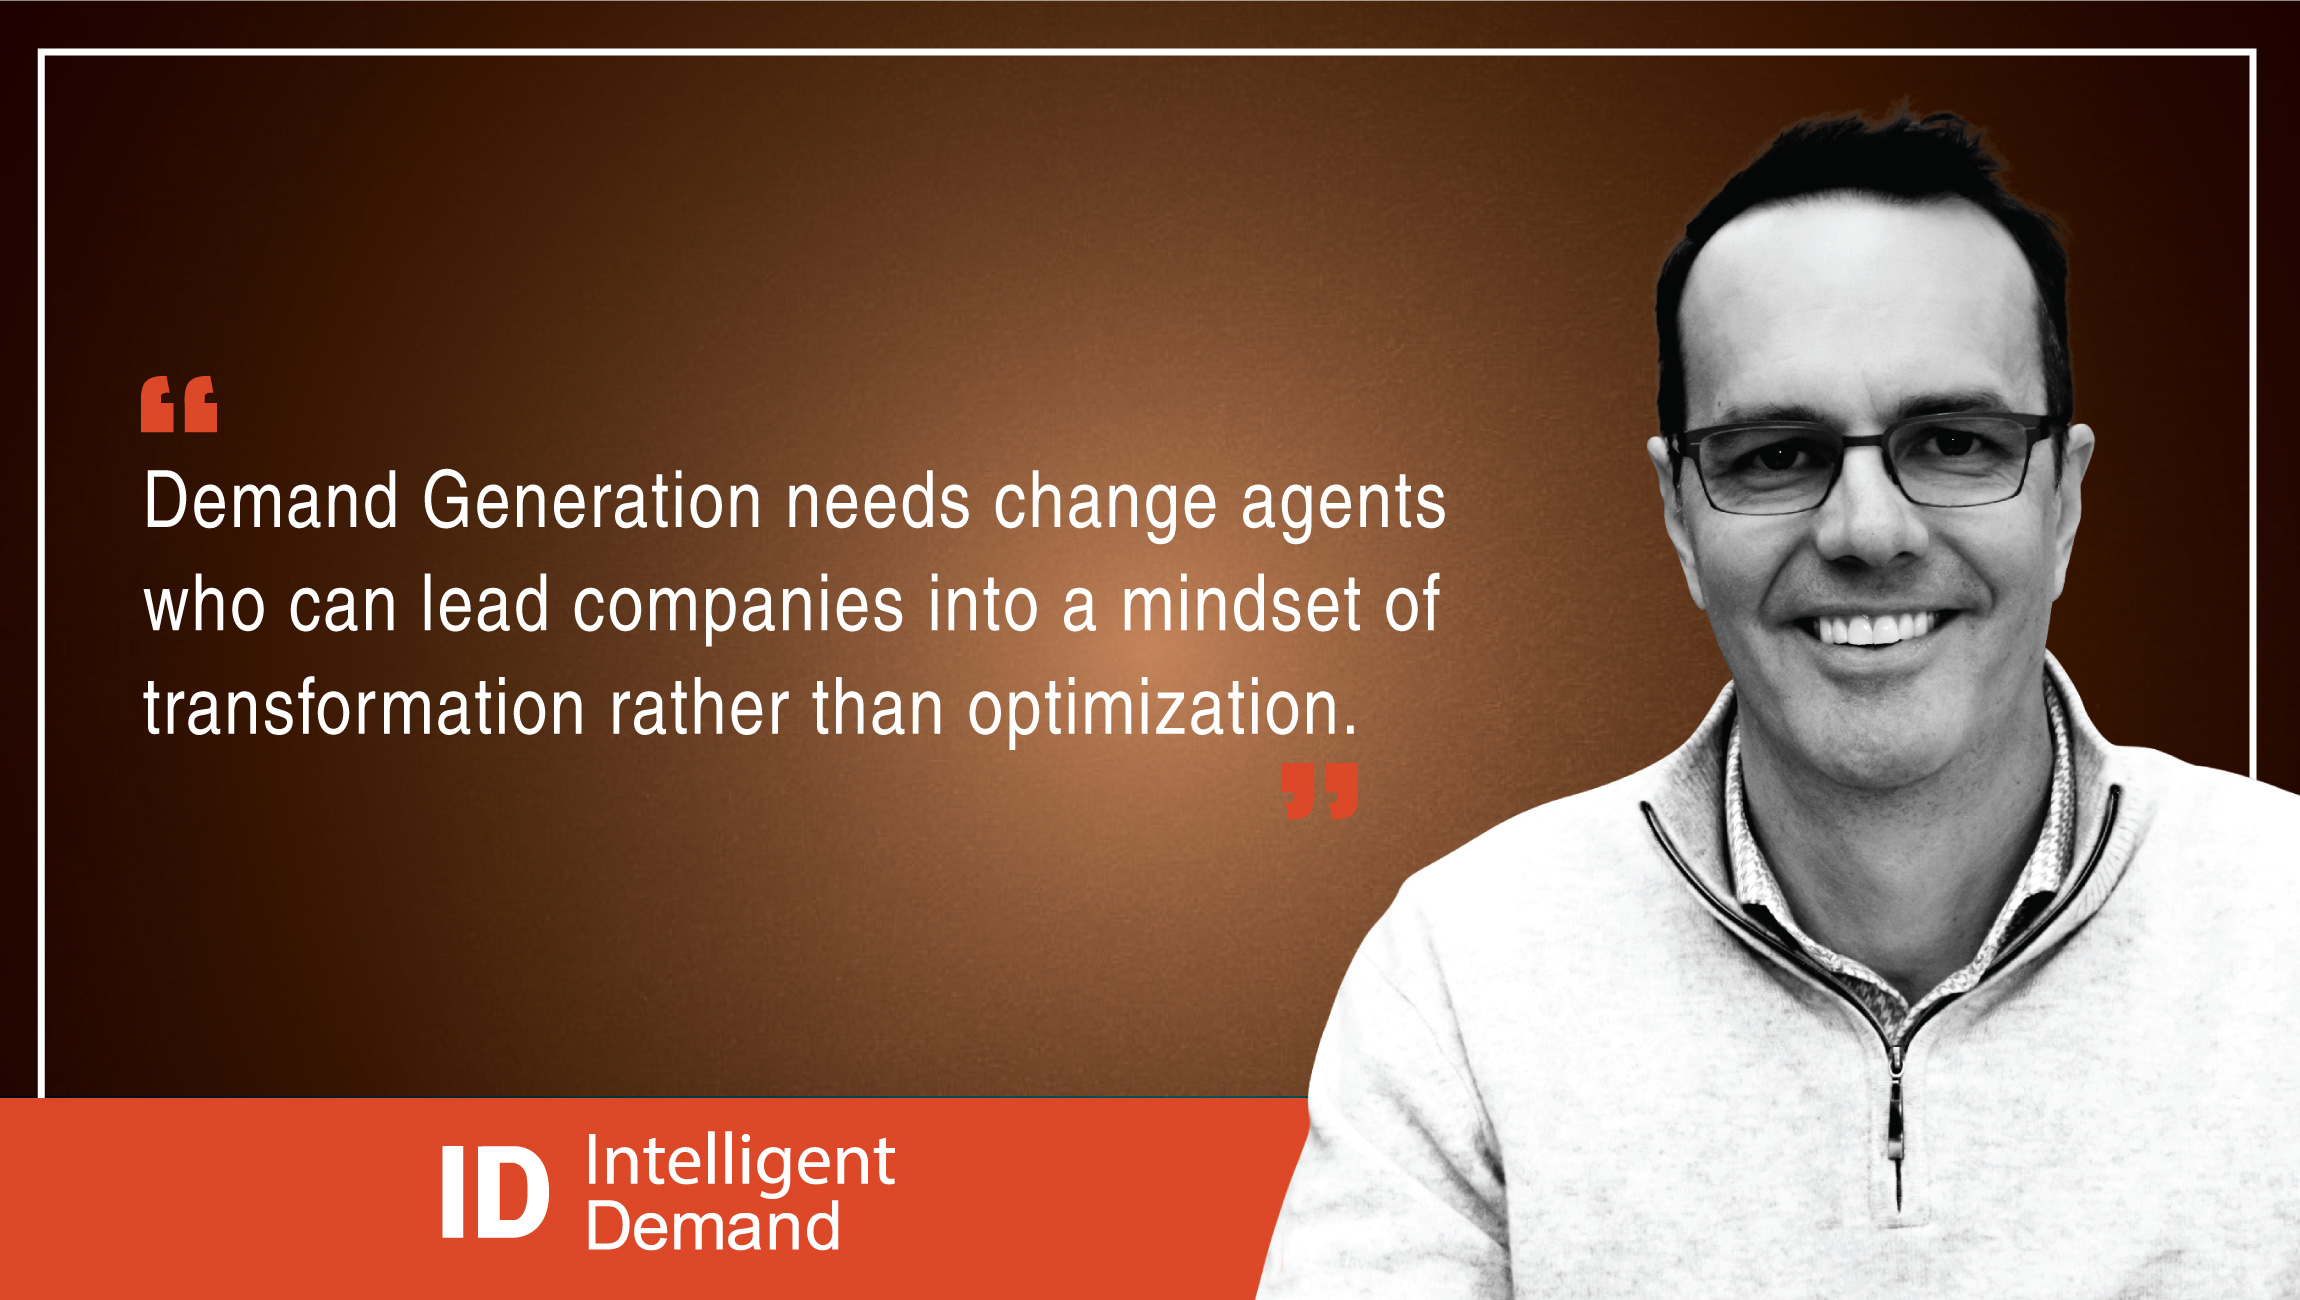 John Arnold, VP of Marketing, Sales & Business Development, Intelligent Demand